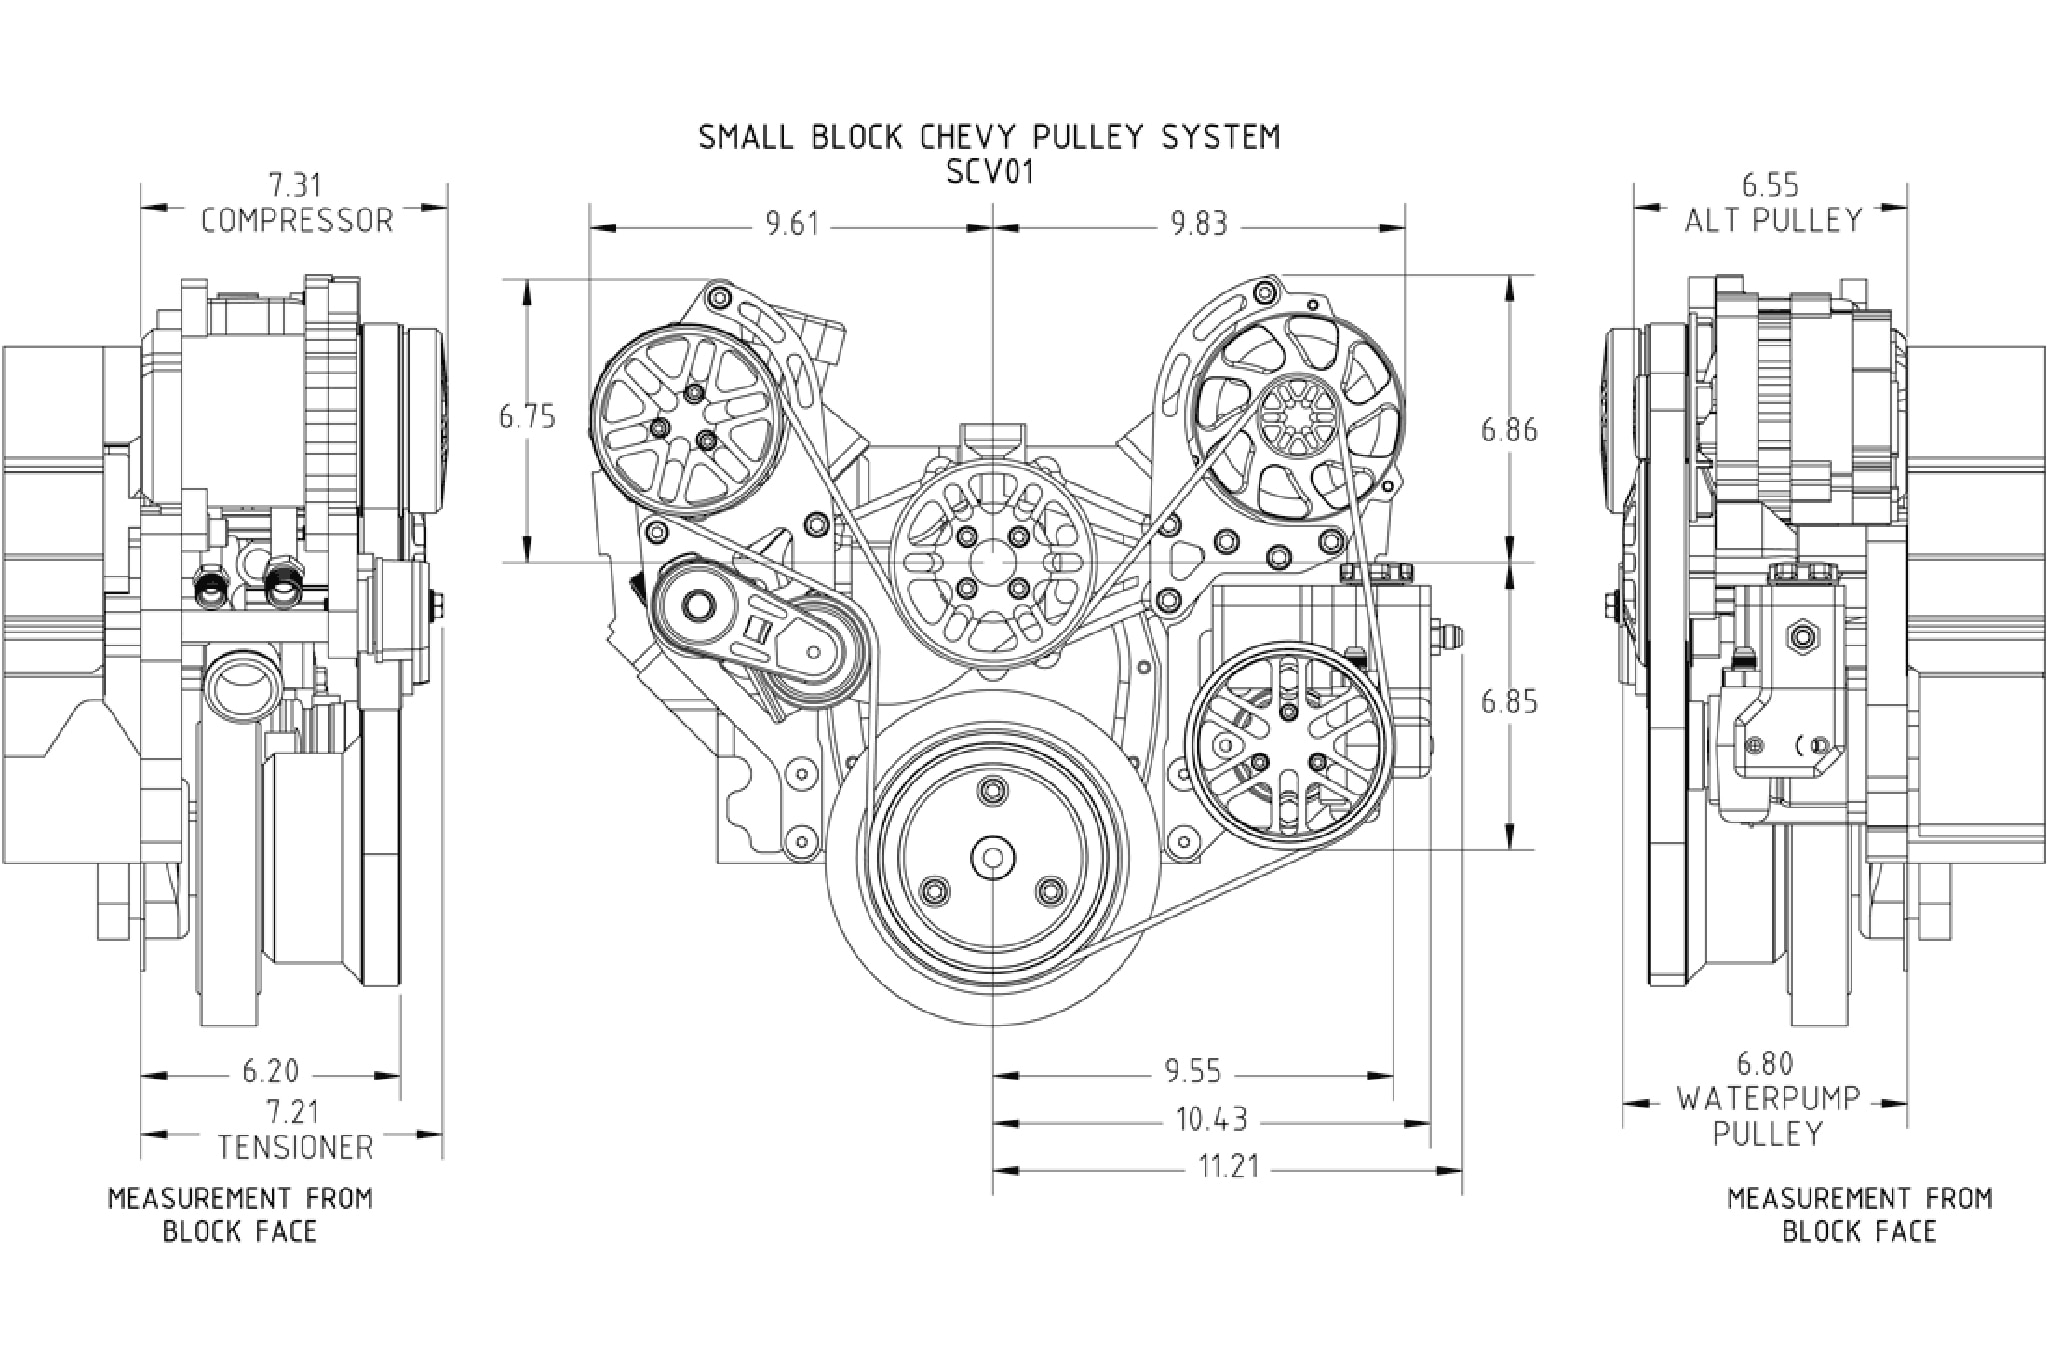 V6 Engine Diagram Buick Lacrosse Buick Auto